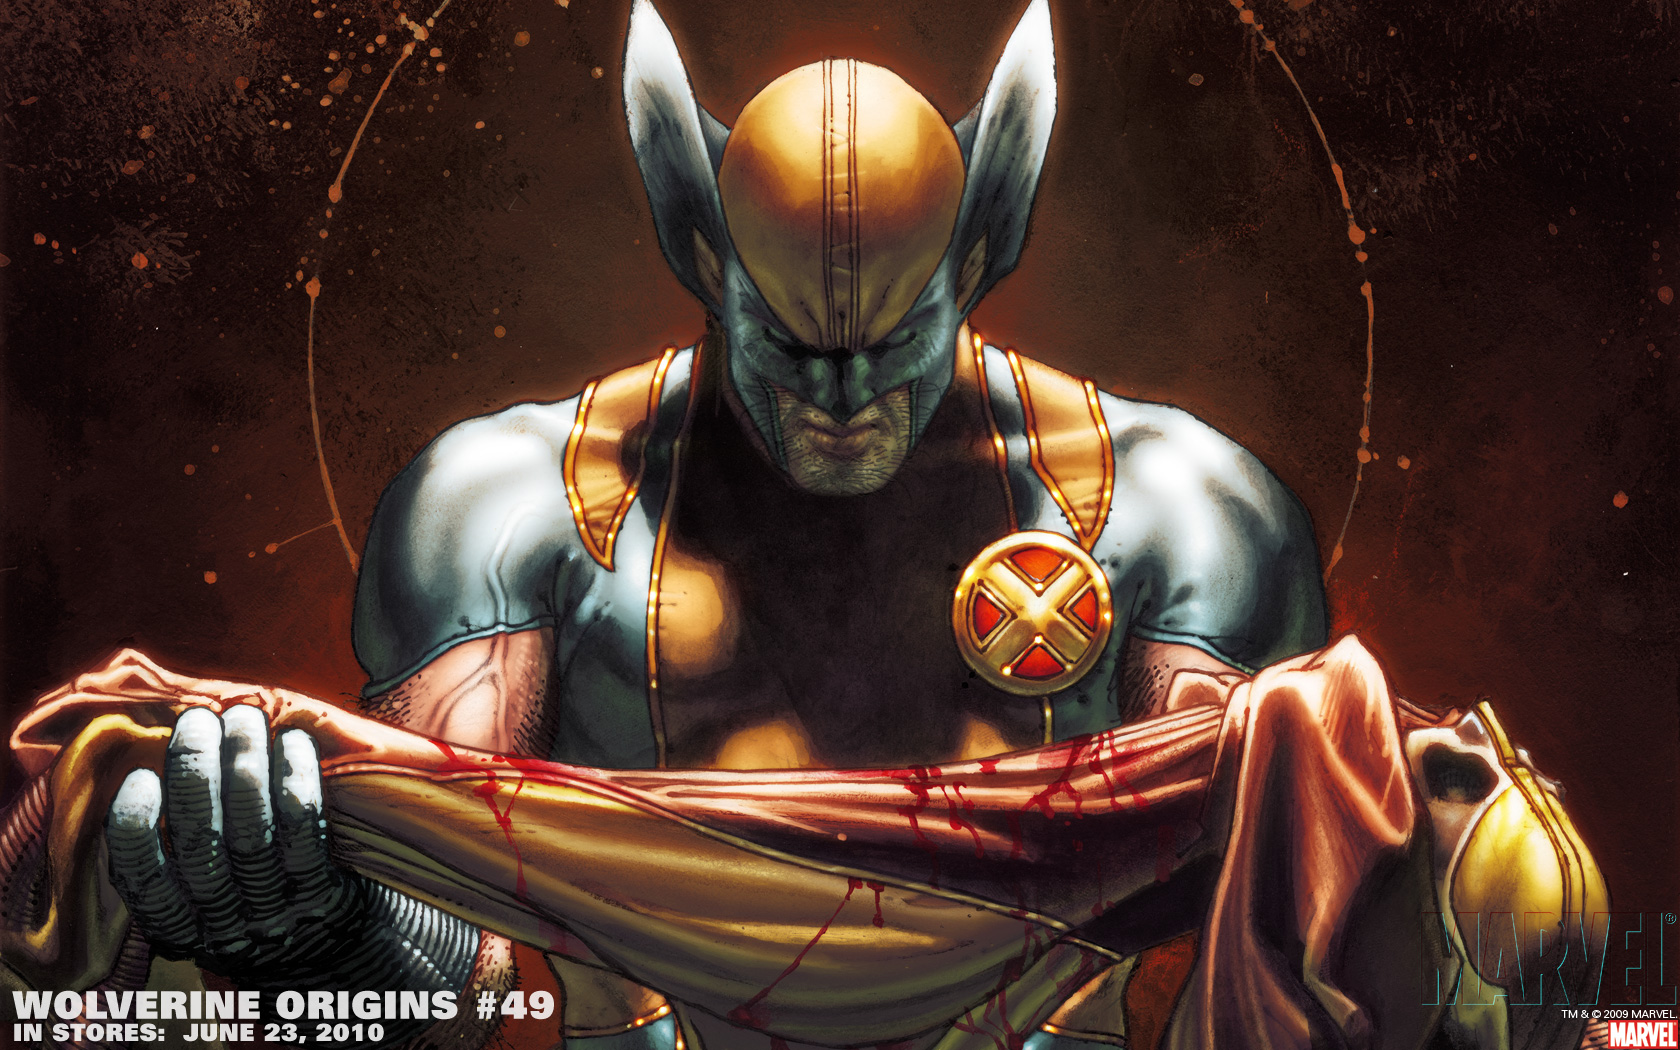 Best 49 The Avengers Wallpaper On Hipwallpaper: Wolverine Wallpaper And Background Image